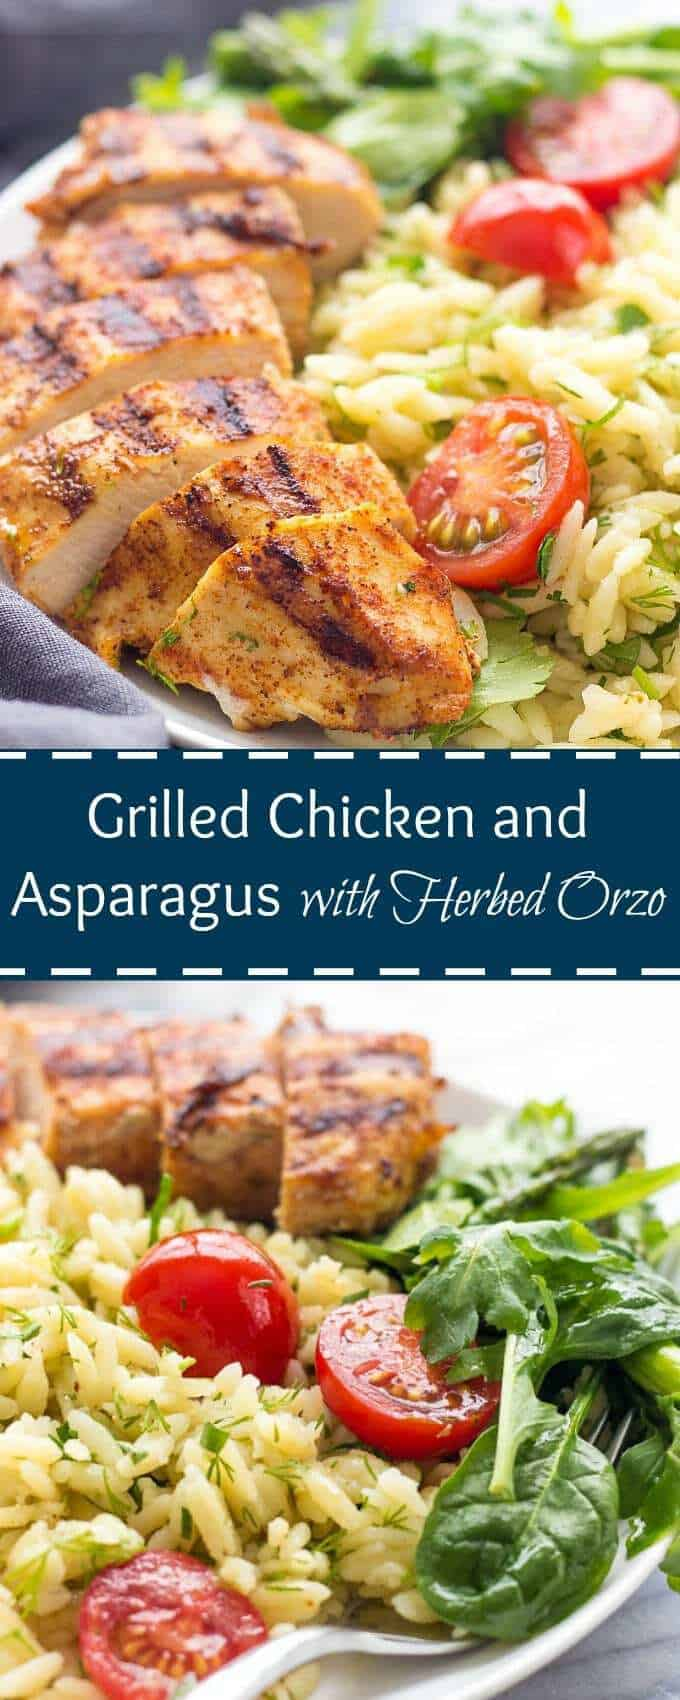 Grilled Chicken and Asparagus with Herbed Orzo is healthy and delicious weeknight meal made in under 30 minutes. Flavor and satisfaction areguaranteed.